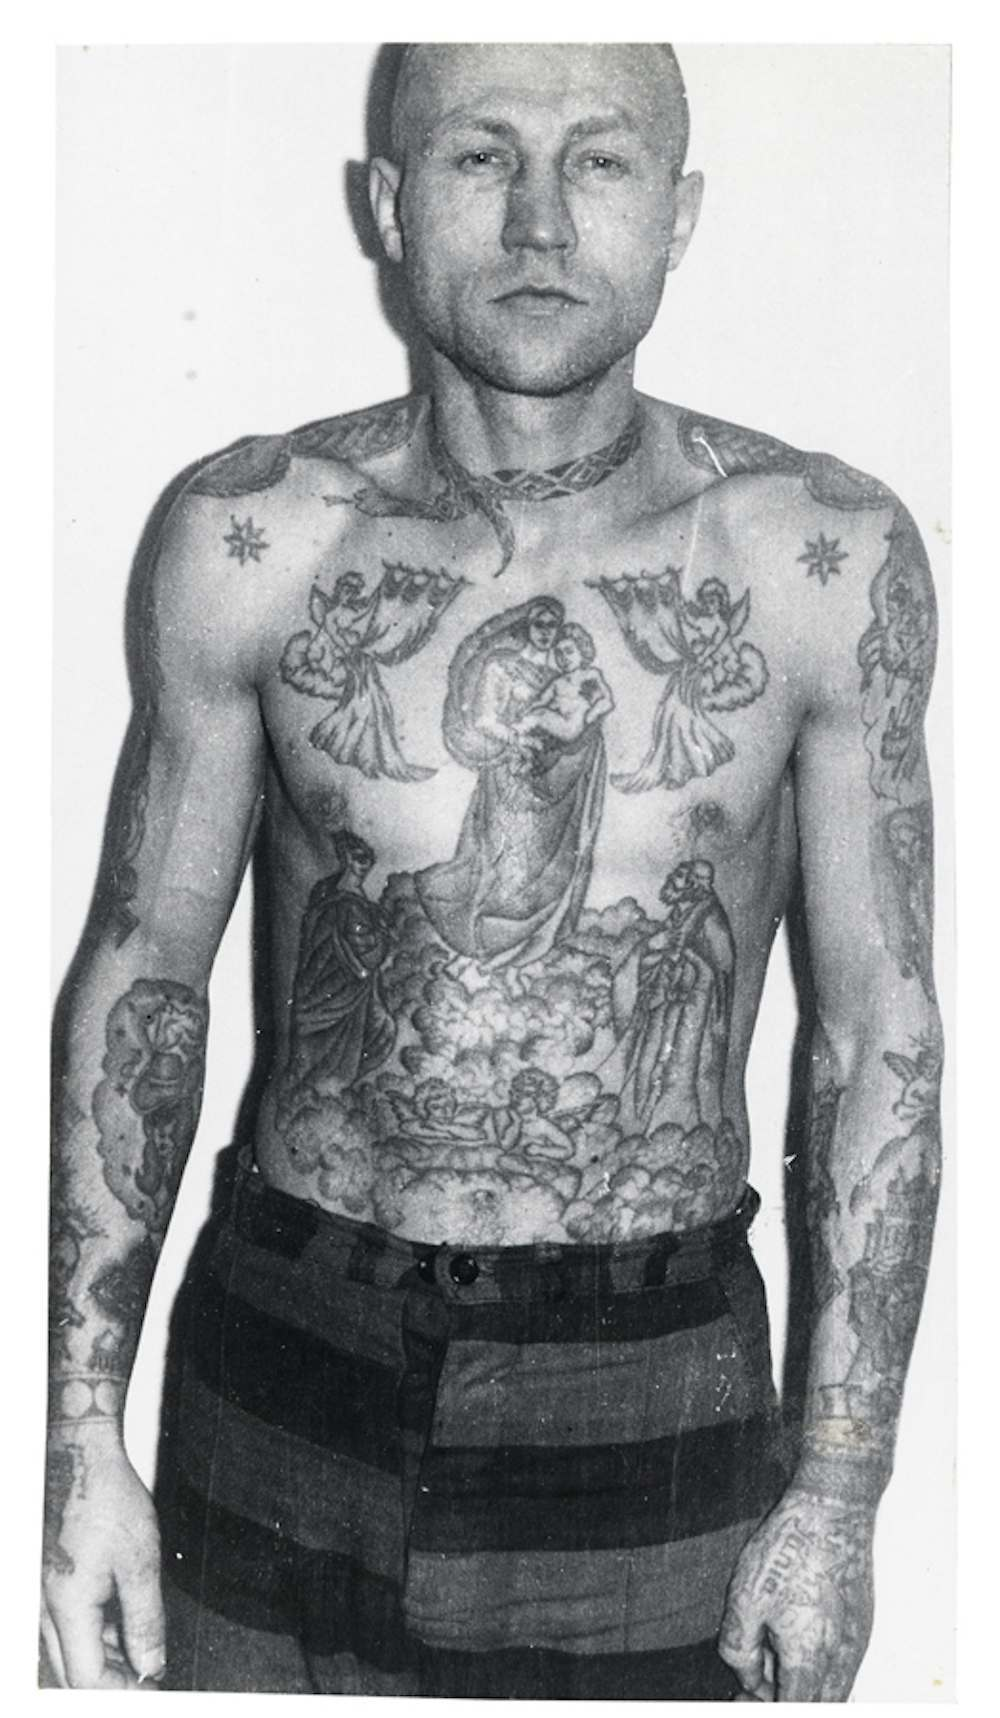 Drug Addiction Tattoos Of Russian Criminal Tattoo Police Files Decoding The Mark Of